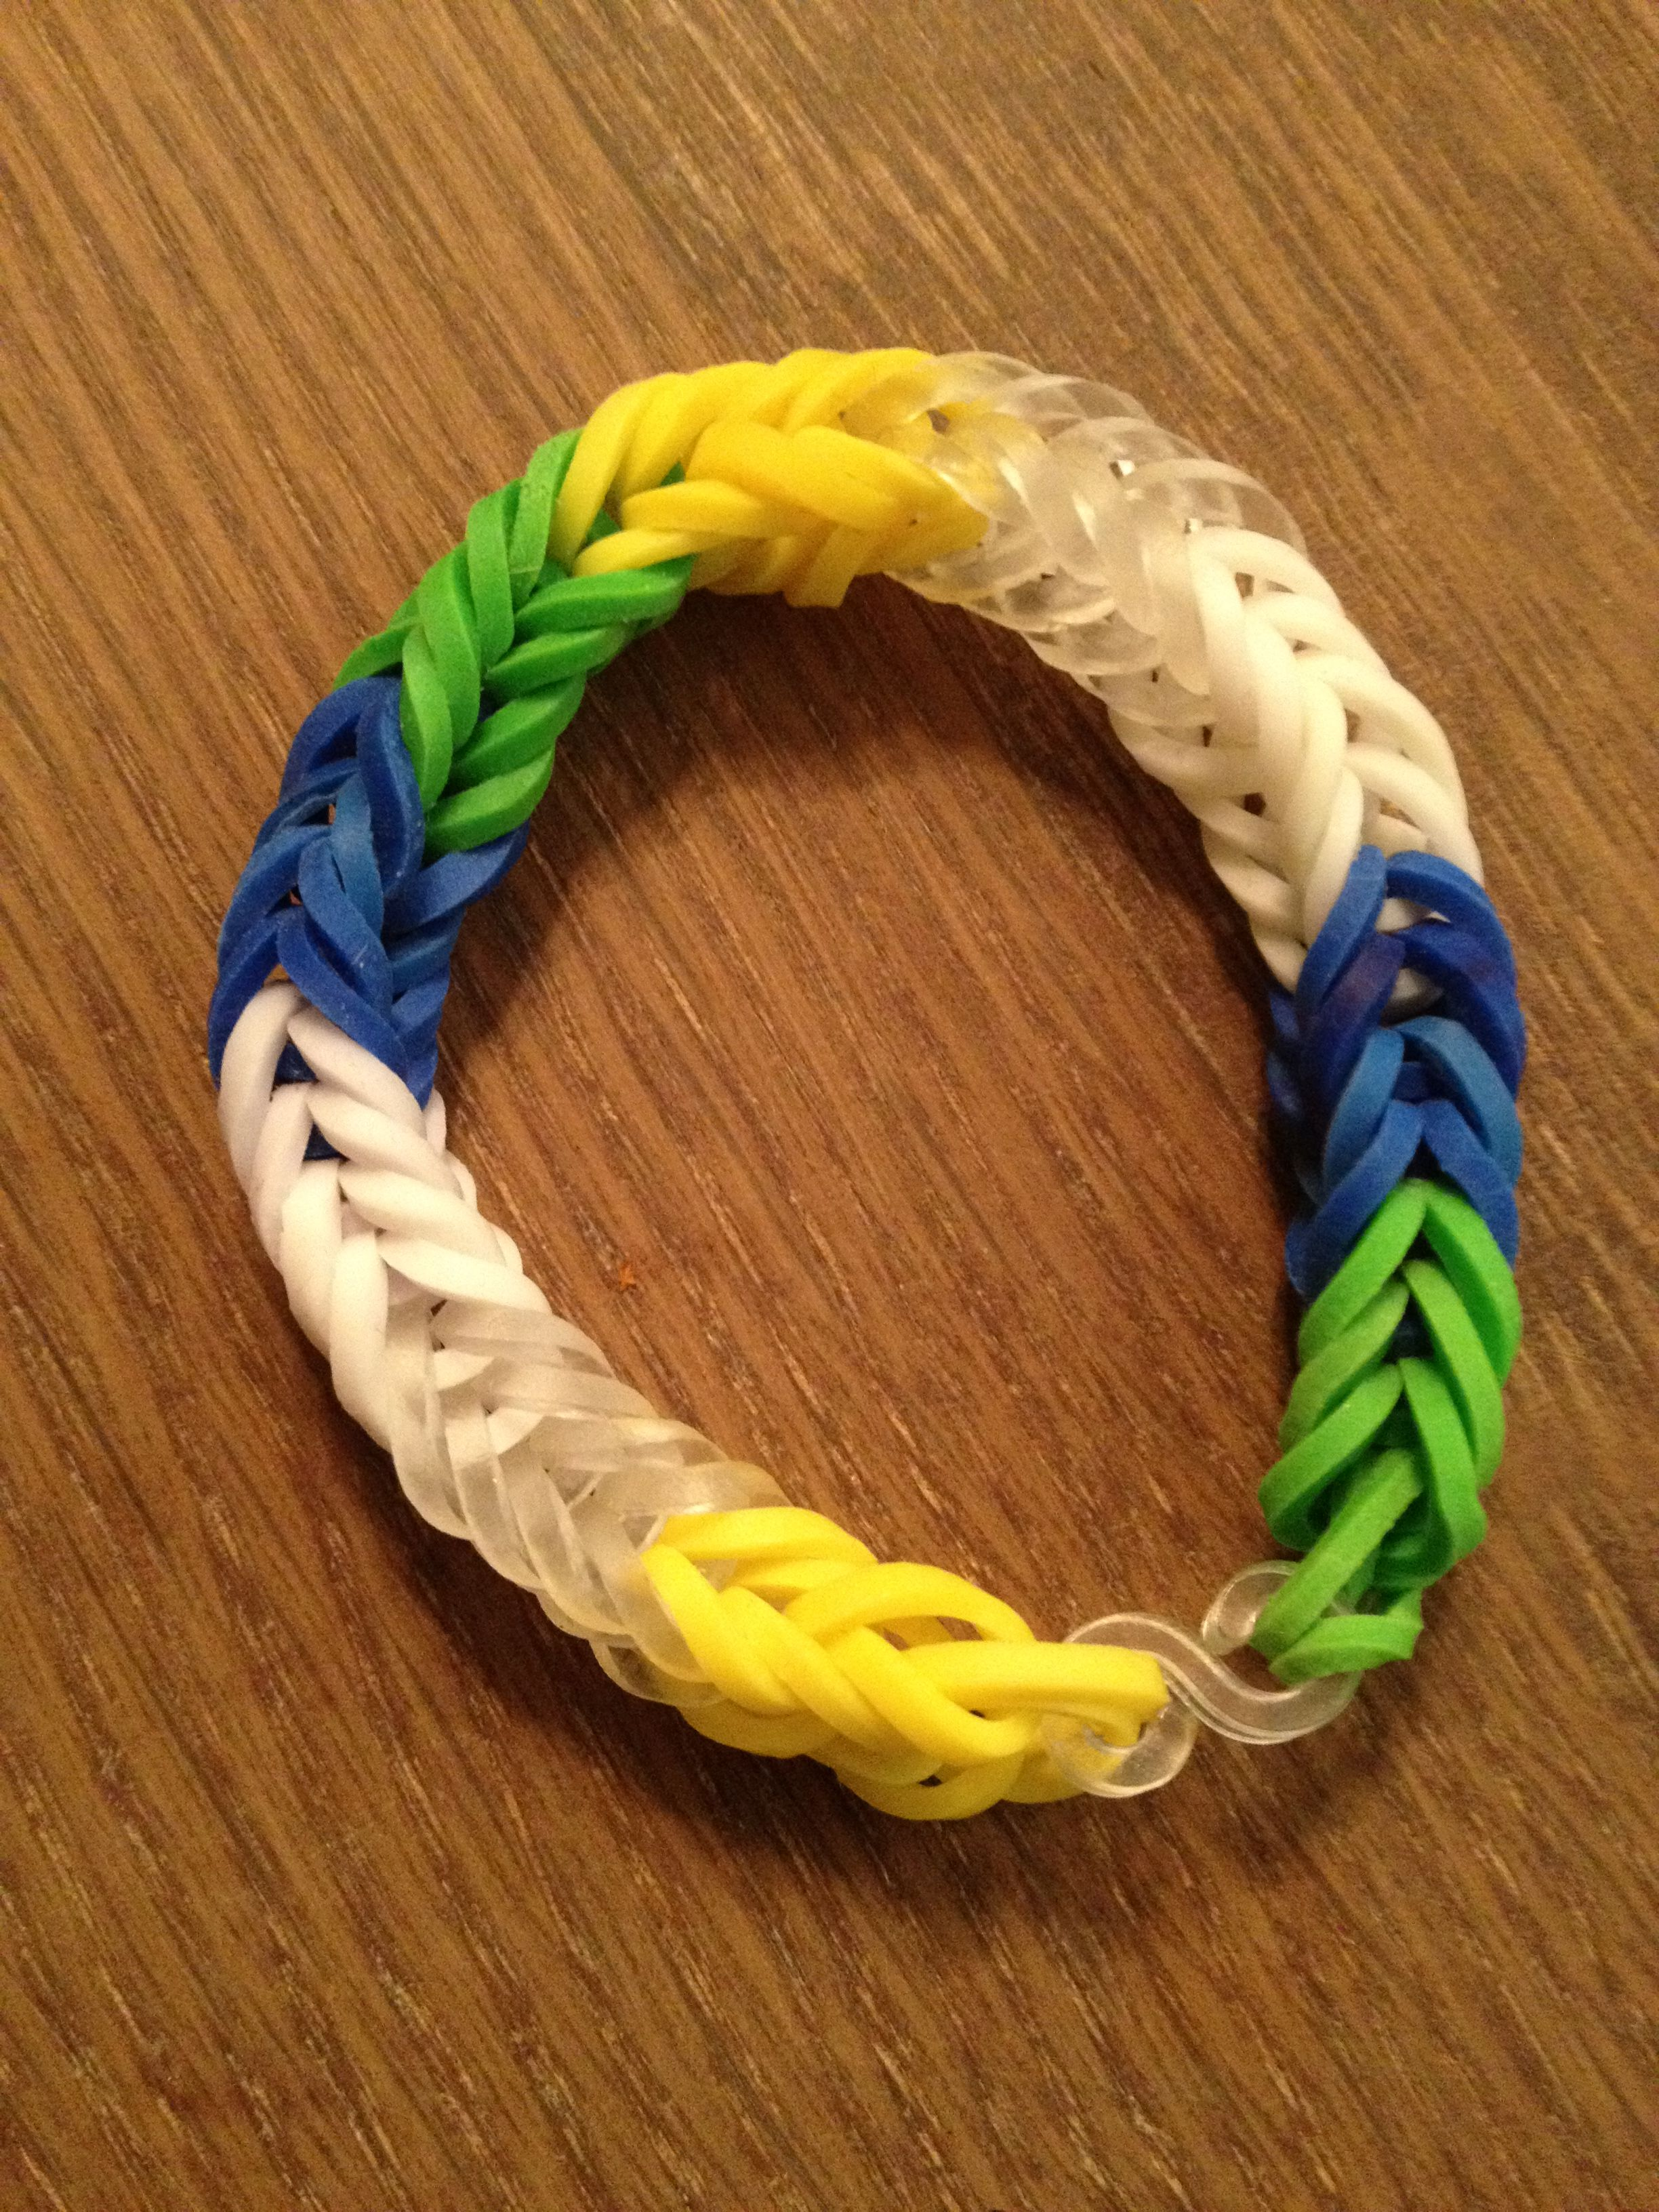 A Fishtail Rainbow Loom Bracelet To Represent The Water Cycle Yellow Is The Sun That Powers The